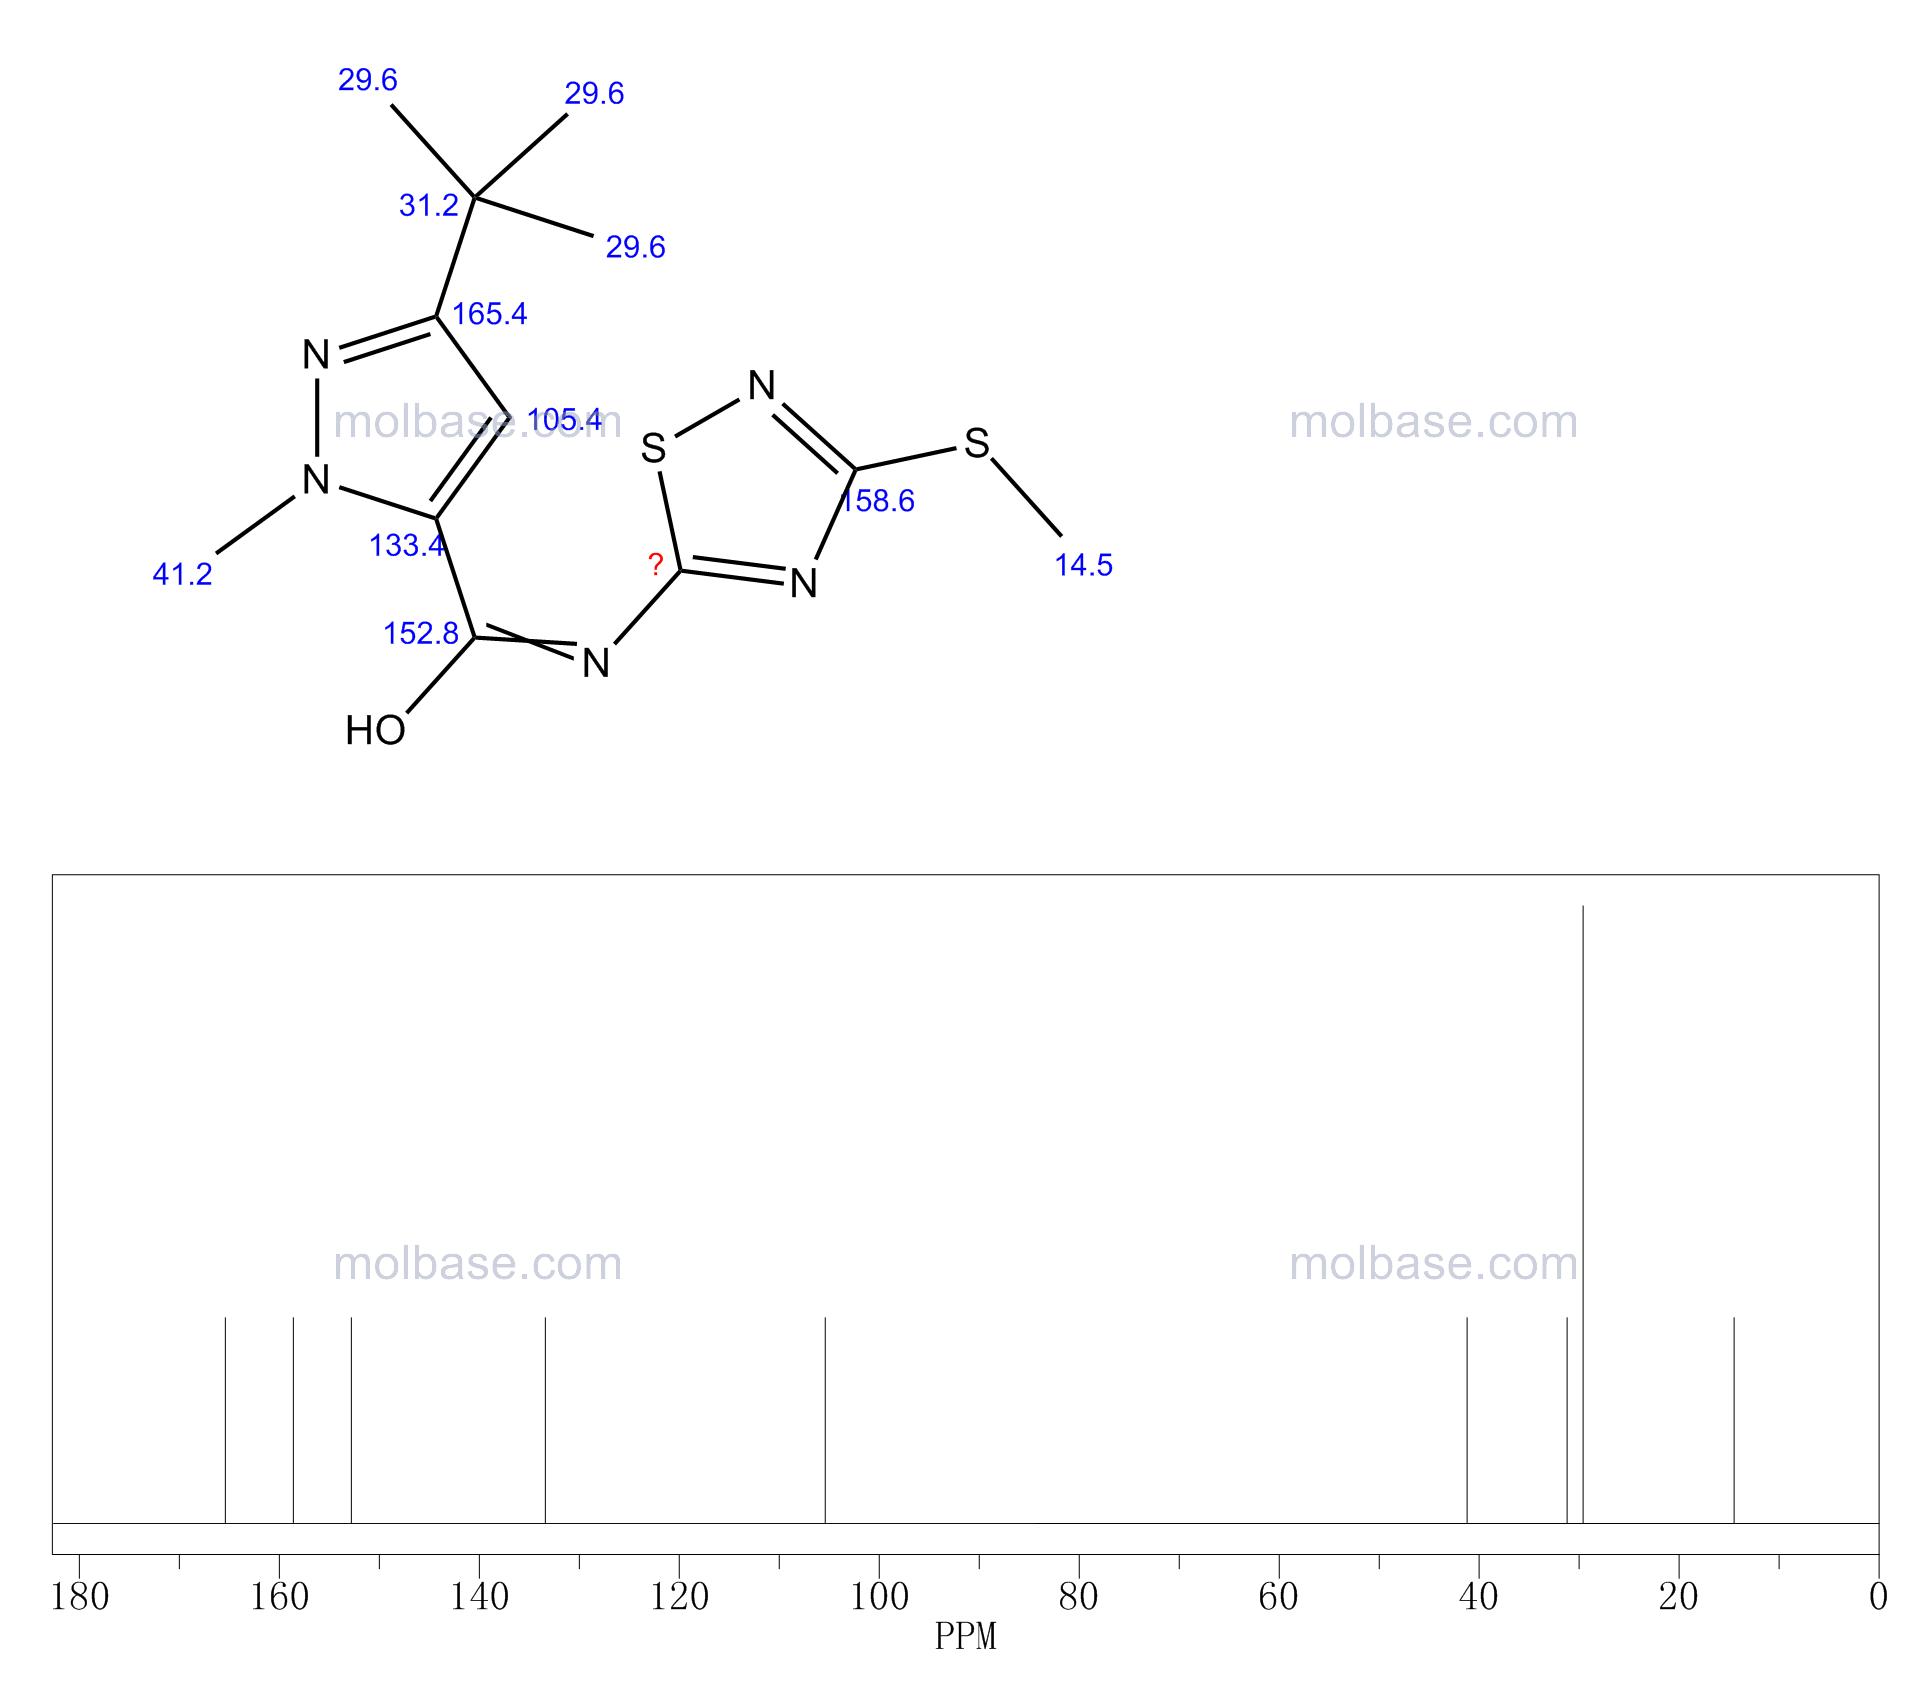 1-Methyl-3-(2-methyl-2-propanyl)-N-[3-(methylsulfanyl)-1,2,4-thia diazol-5-yl]-1H-pyrazole-5-carboxamide NMR spectra analysis, Chemical CAS NO. 606117-98-0 NMR spectral analysis, 1-Methyl-3-(2-methyl-2-propanyl)-N-[3-(methylsulfanyl)-1,2,4-thia diazol-5-yl]-1H-pyrazole-5-carboxamide C-NMR spectrum